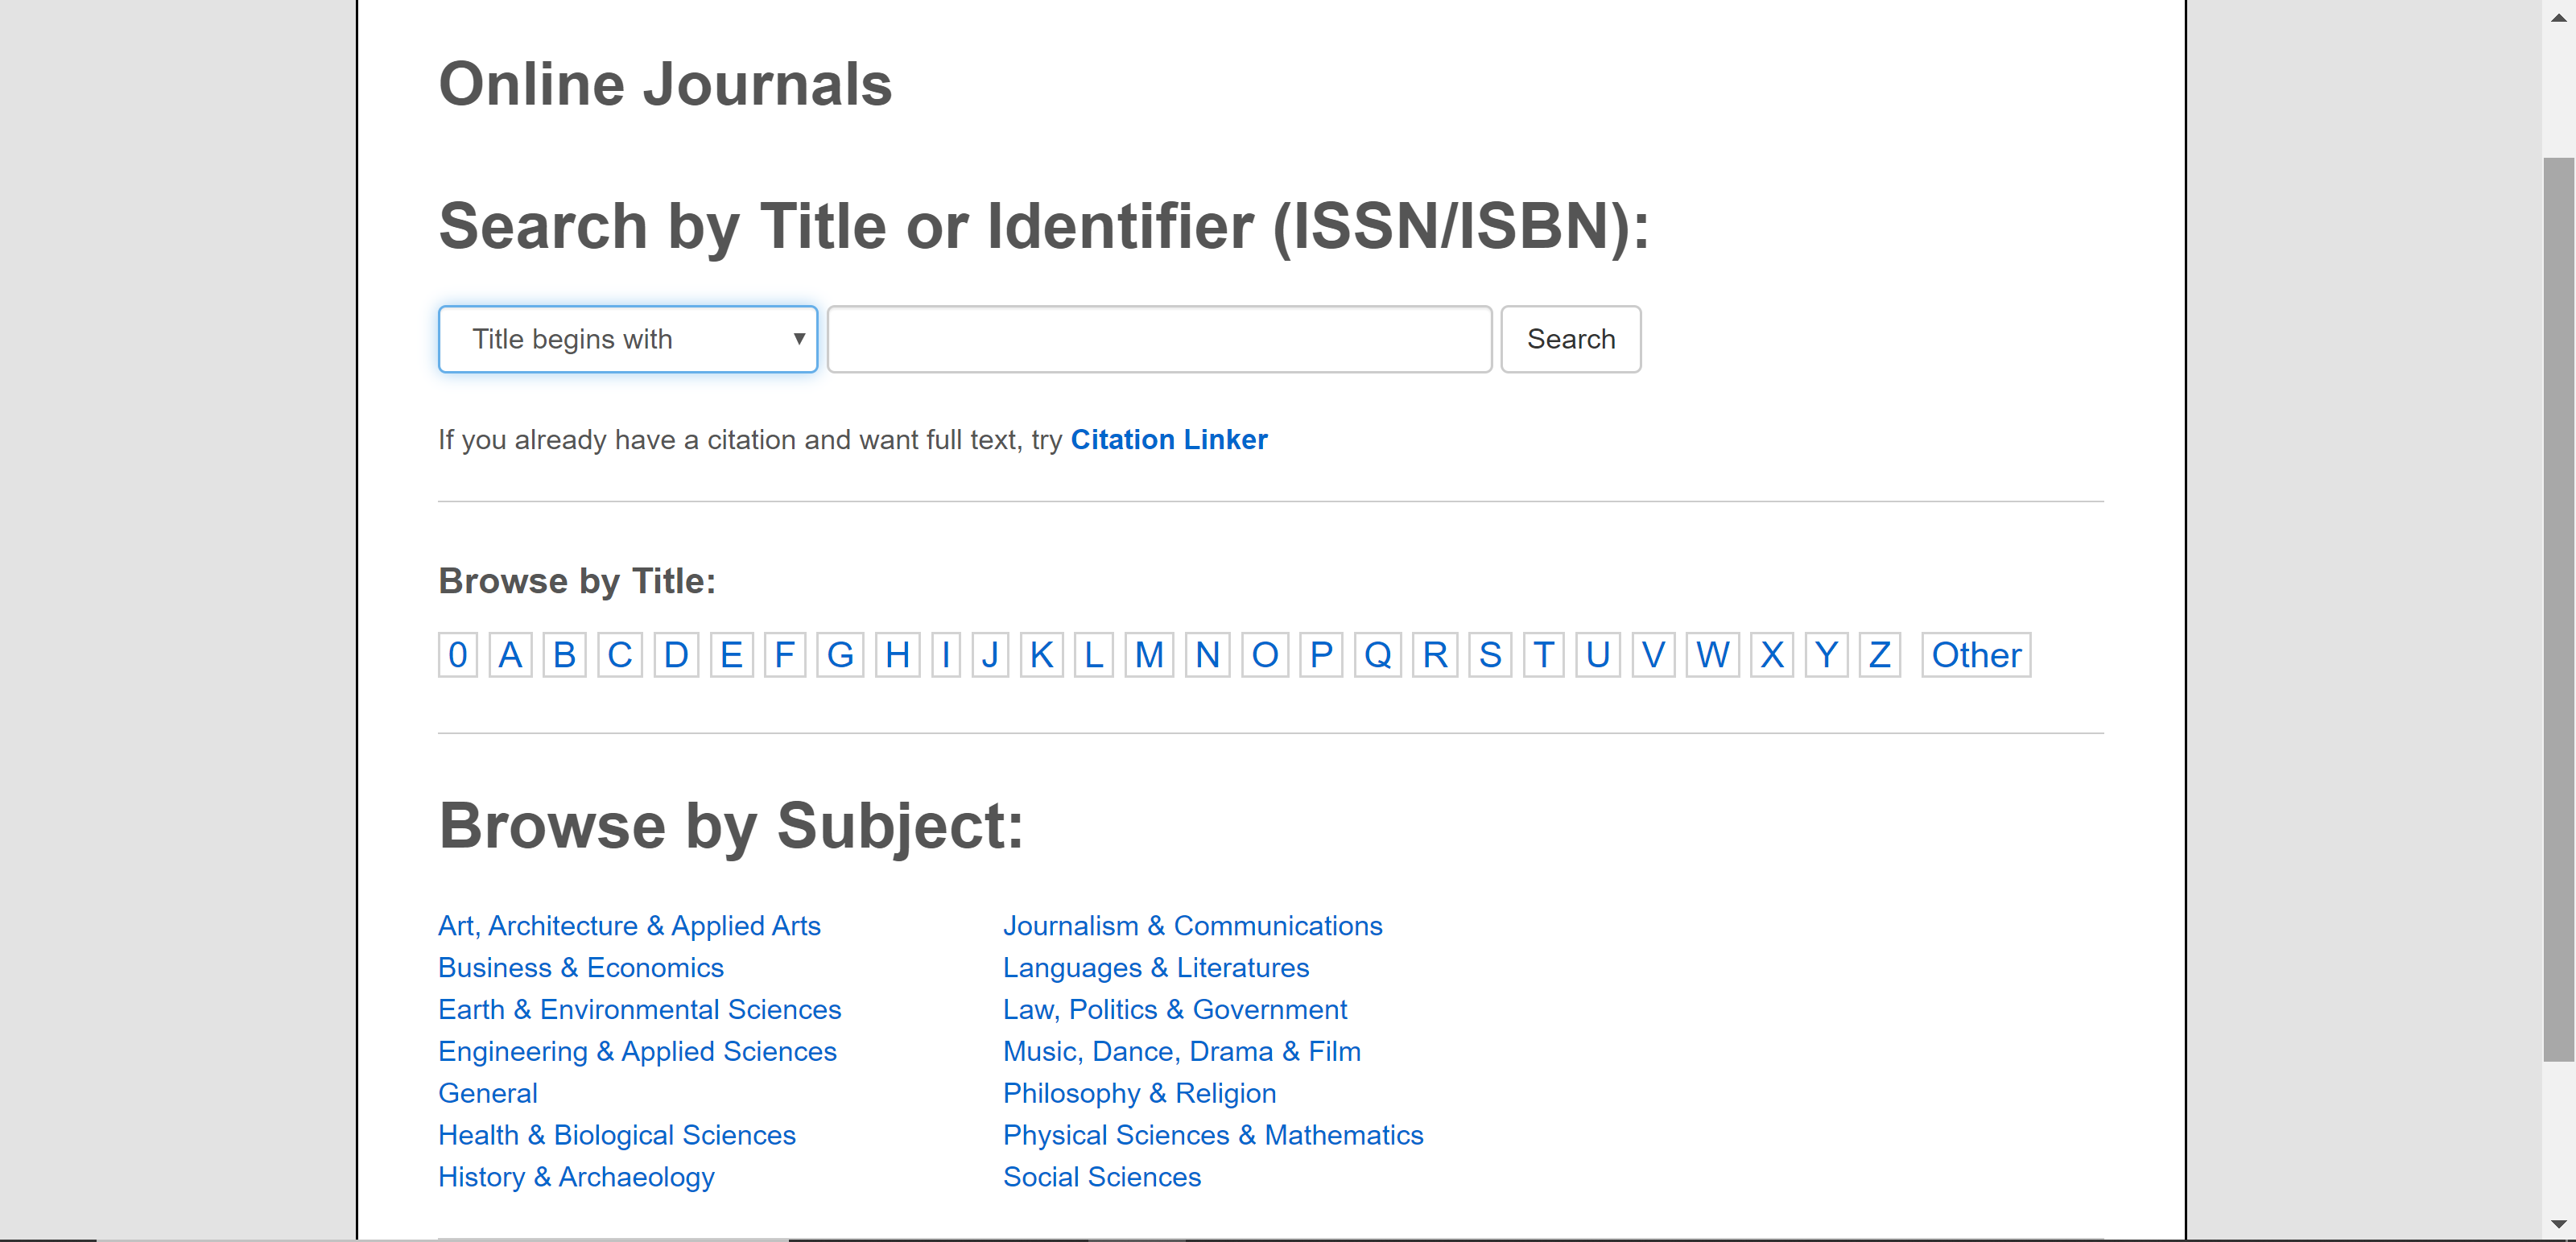 Image of online journals search tool